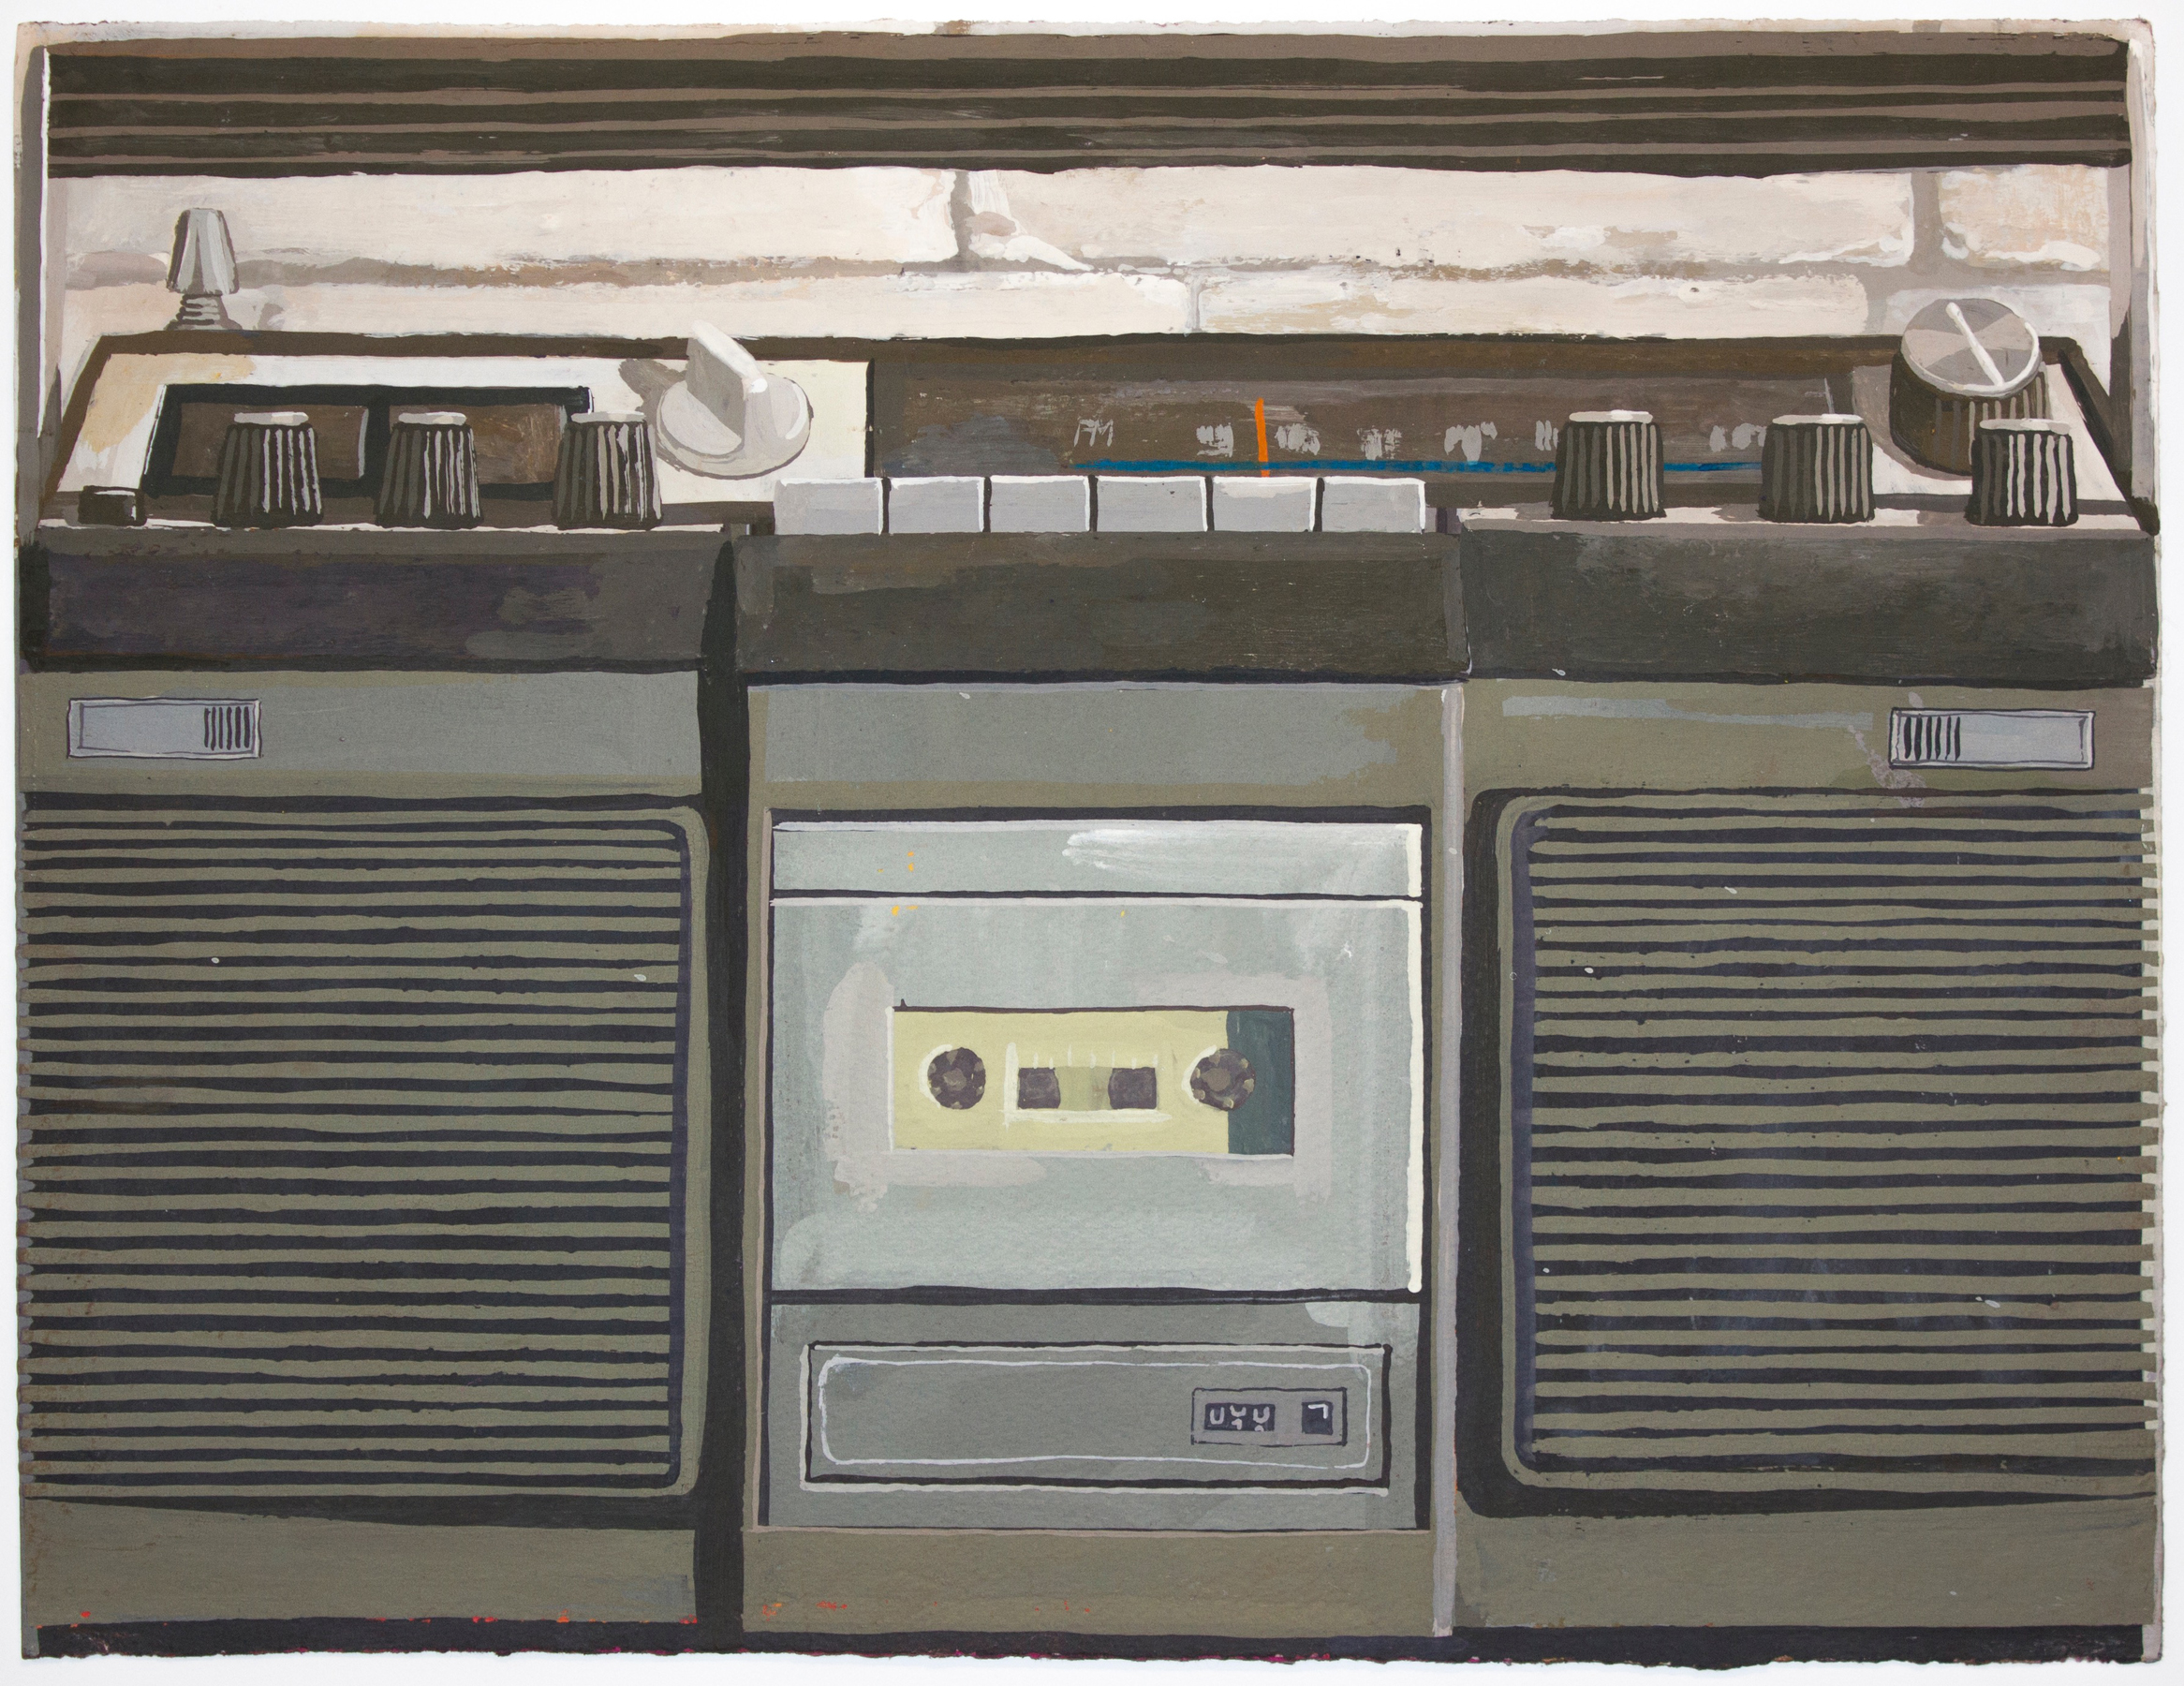 Radio, 2015, gouache on paper, 12 x 16 inches.